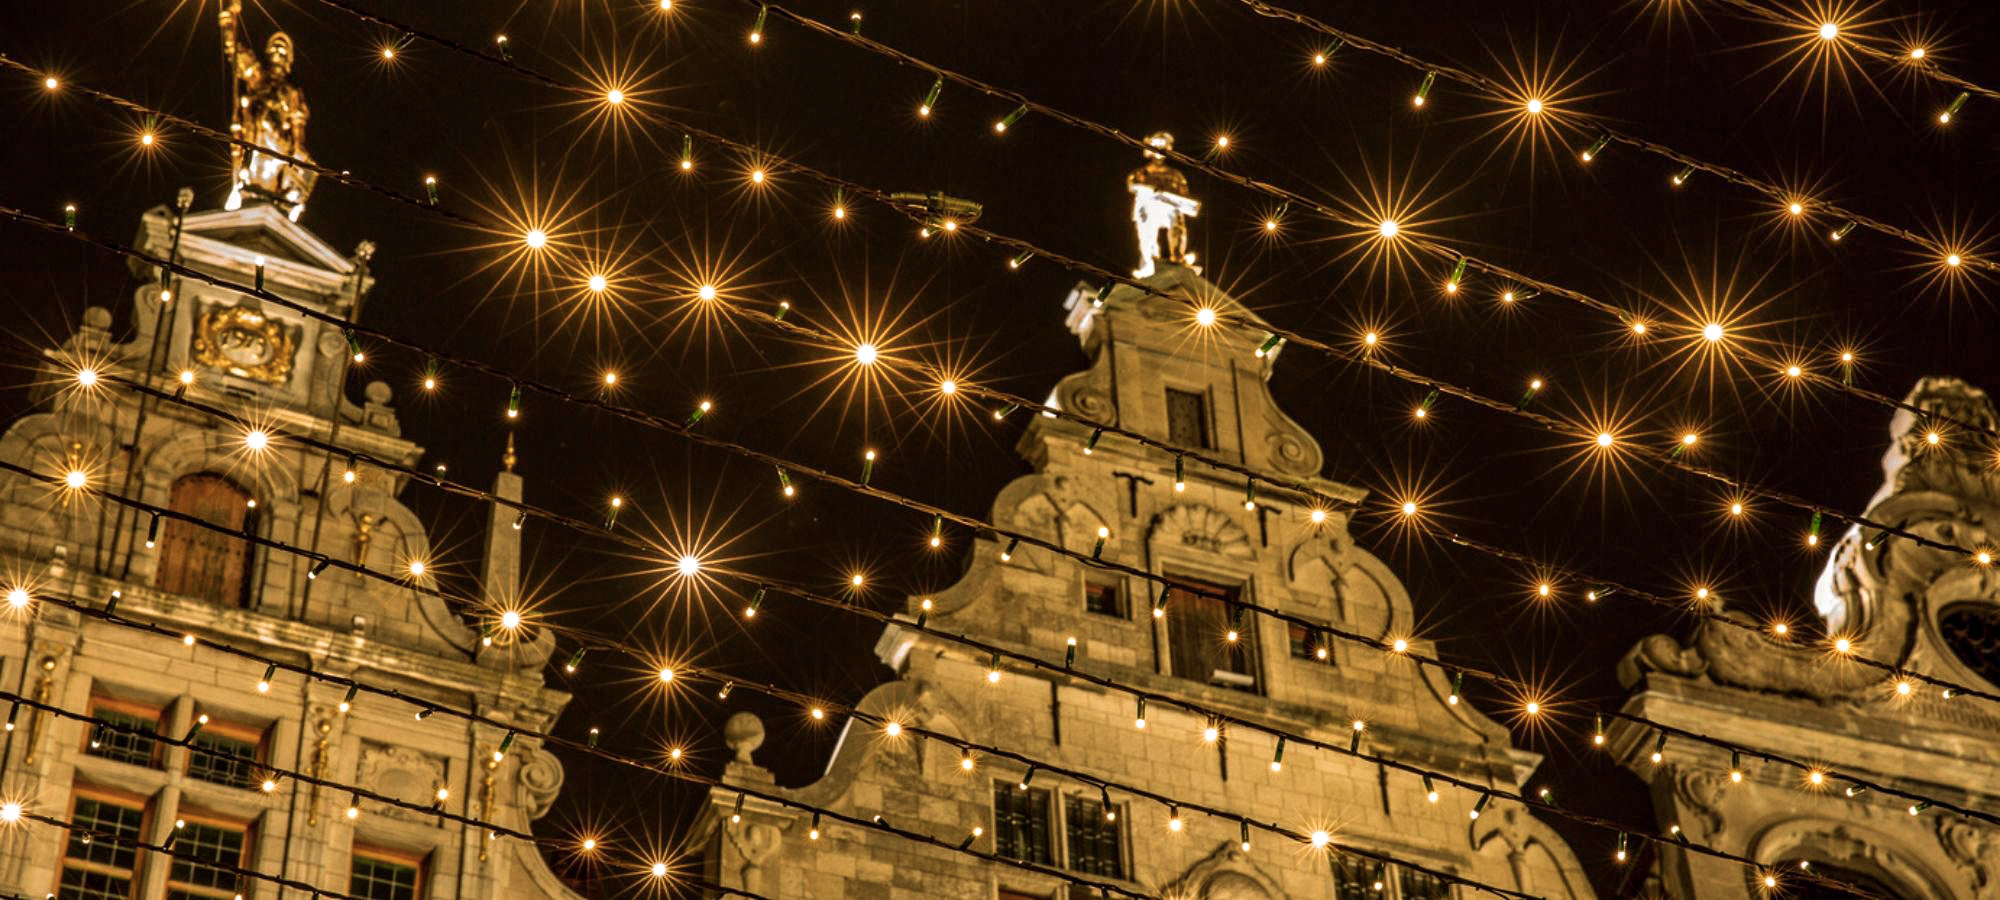 Christmas lights canopy strings hanging above the Grote Markt by the guild halls at night, Antwerp, Belgium